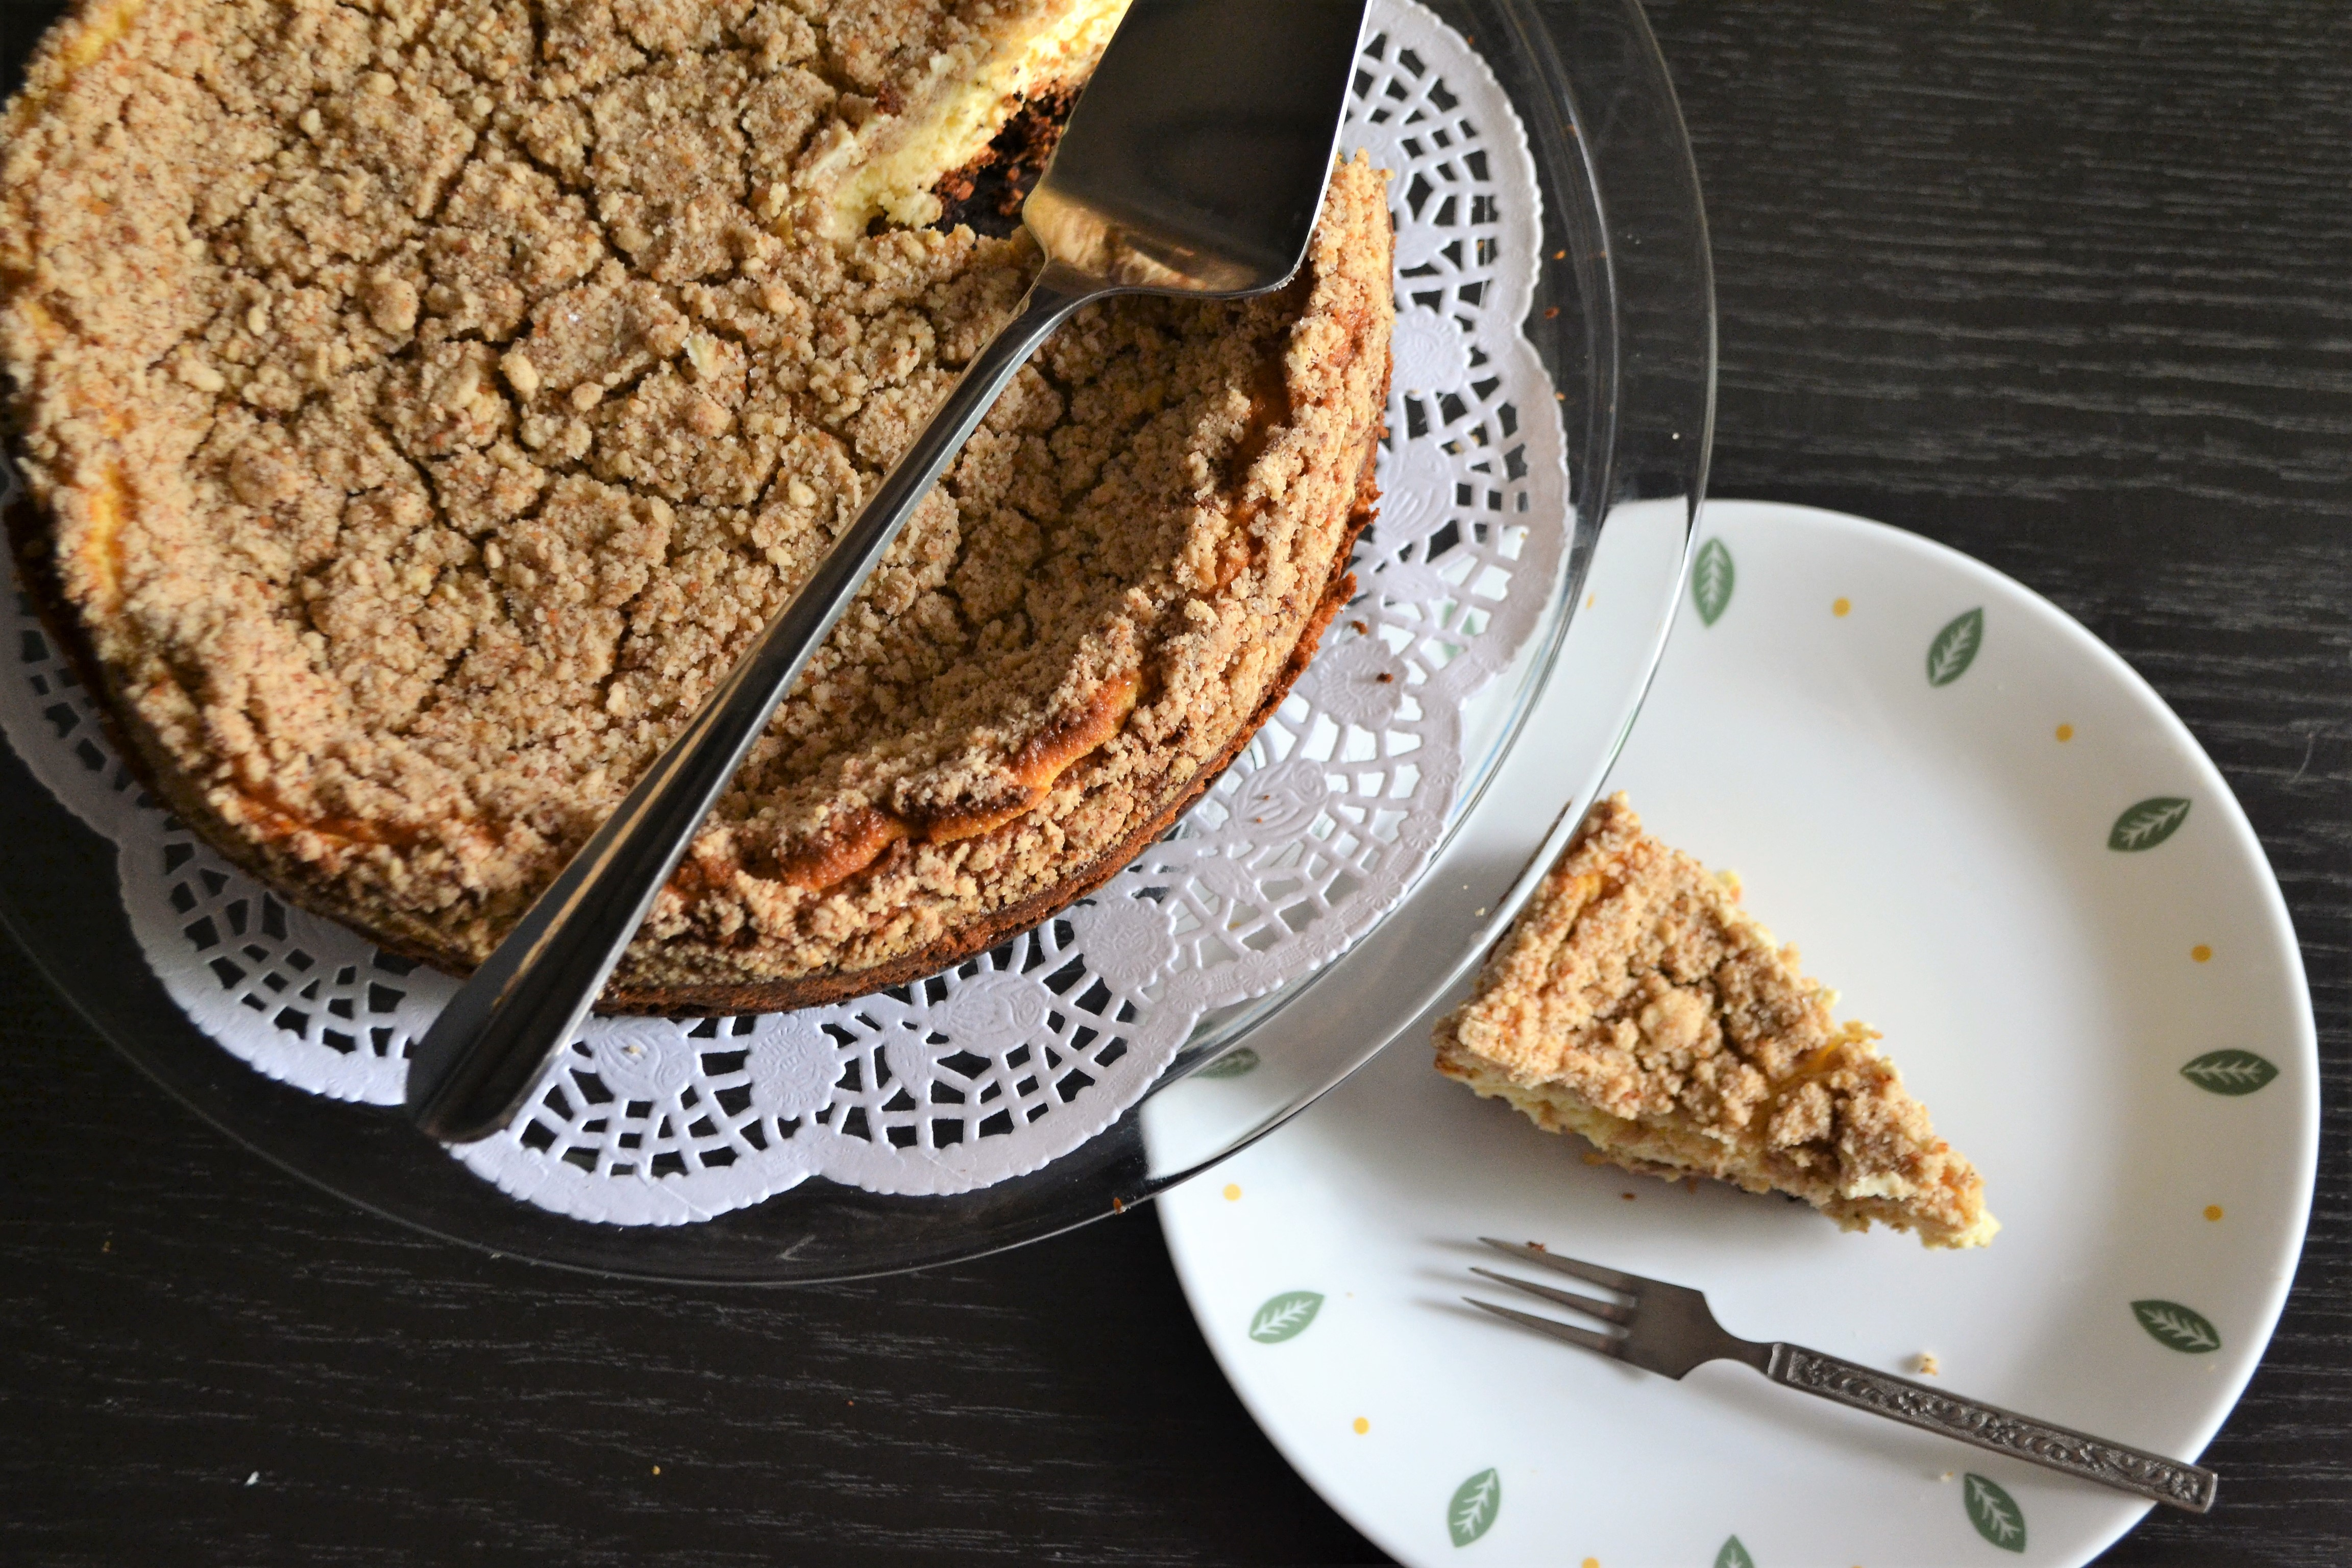 Apple Crumble Cheesecake (Gluten Free)